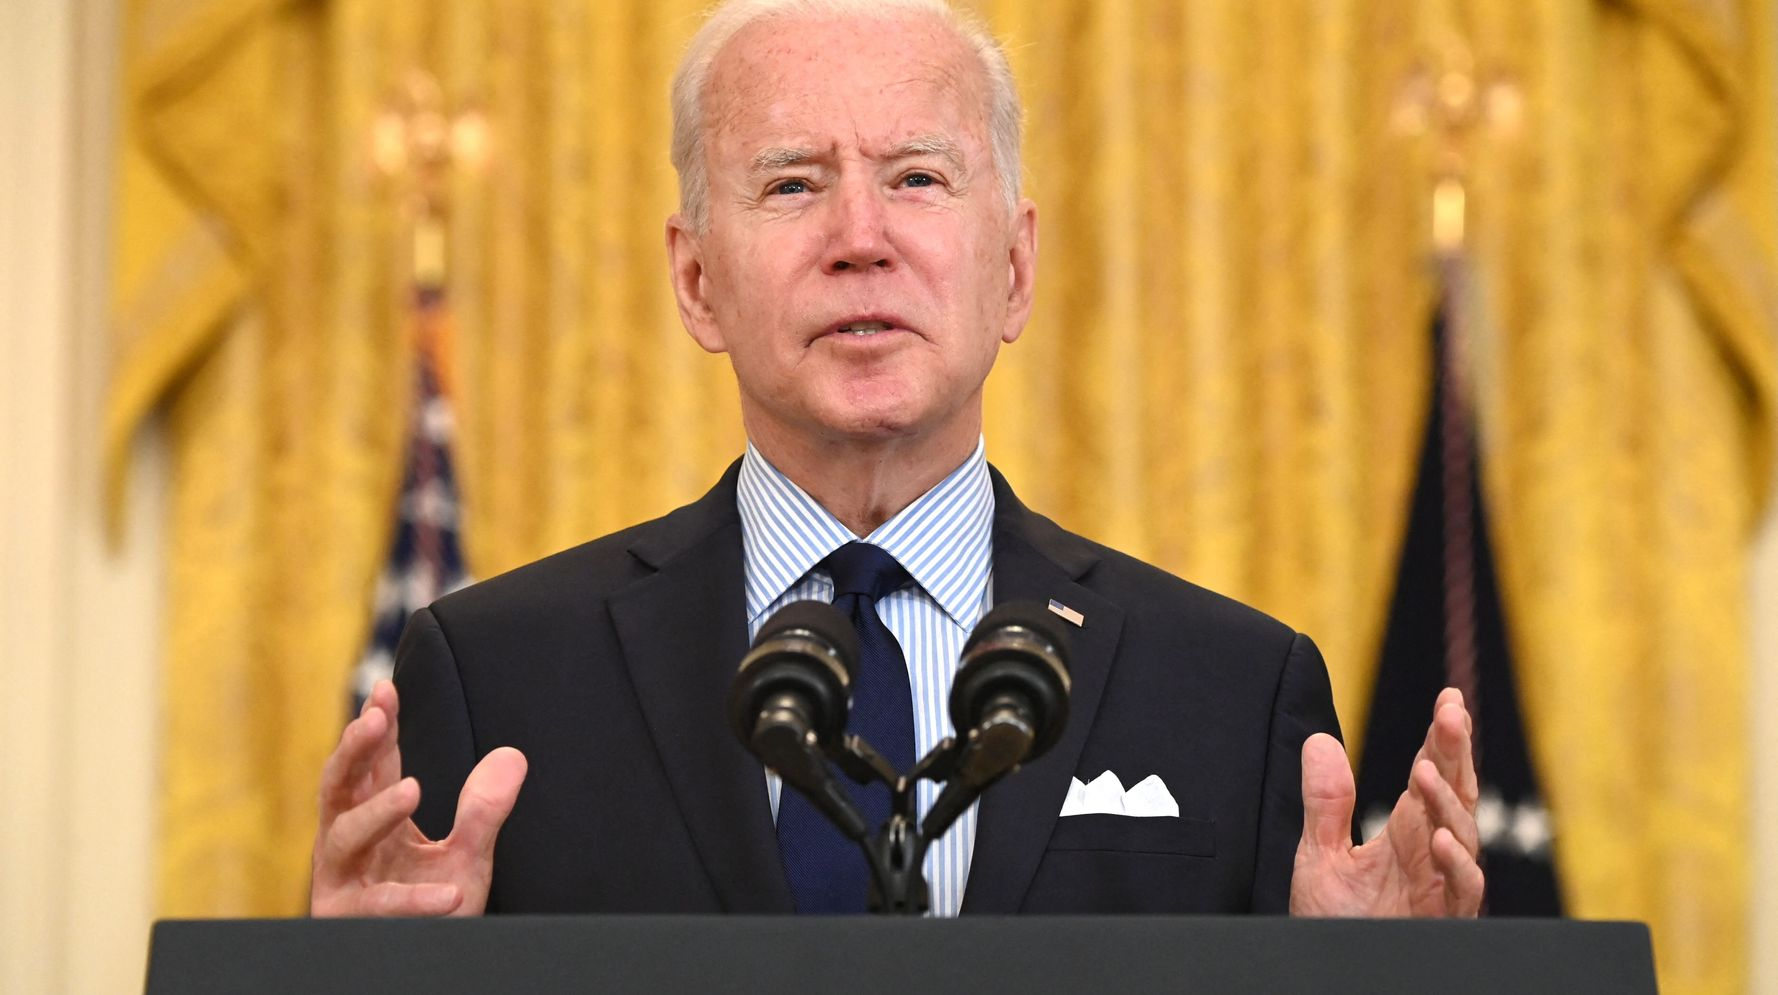 There Are Only 2 Native American Federal Judges. Biden Just Nominated A Third.